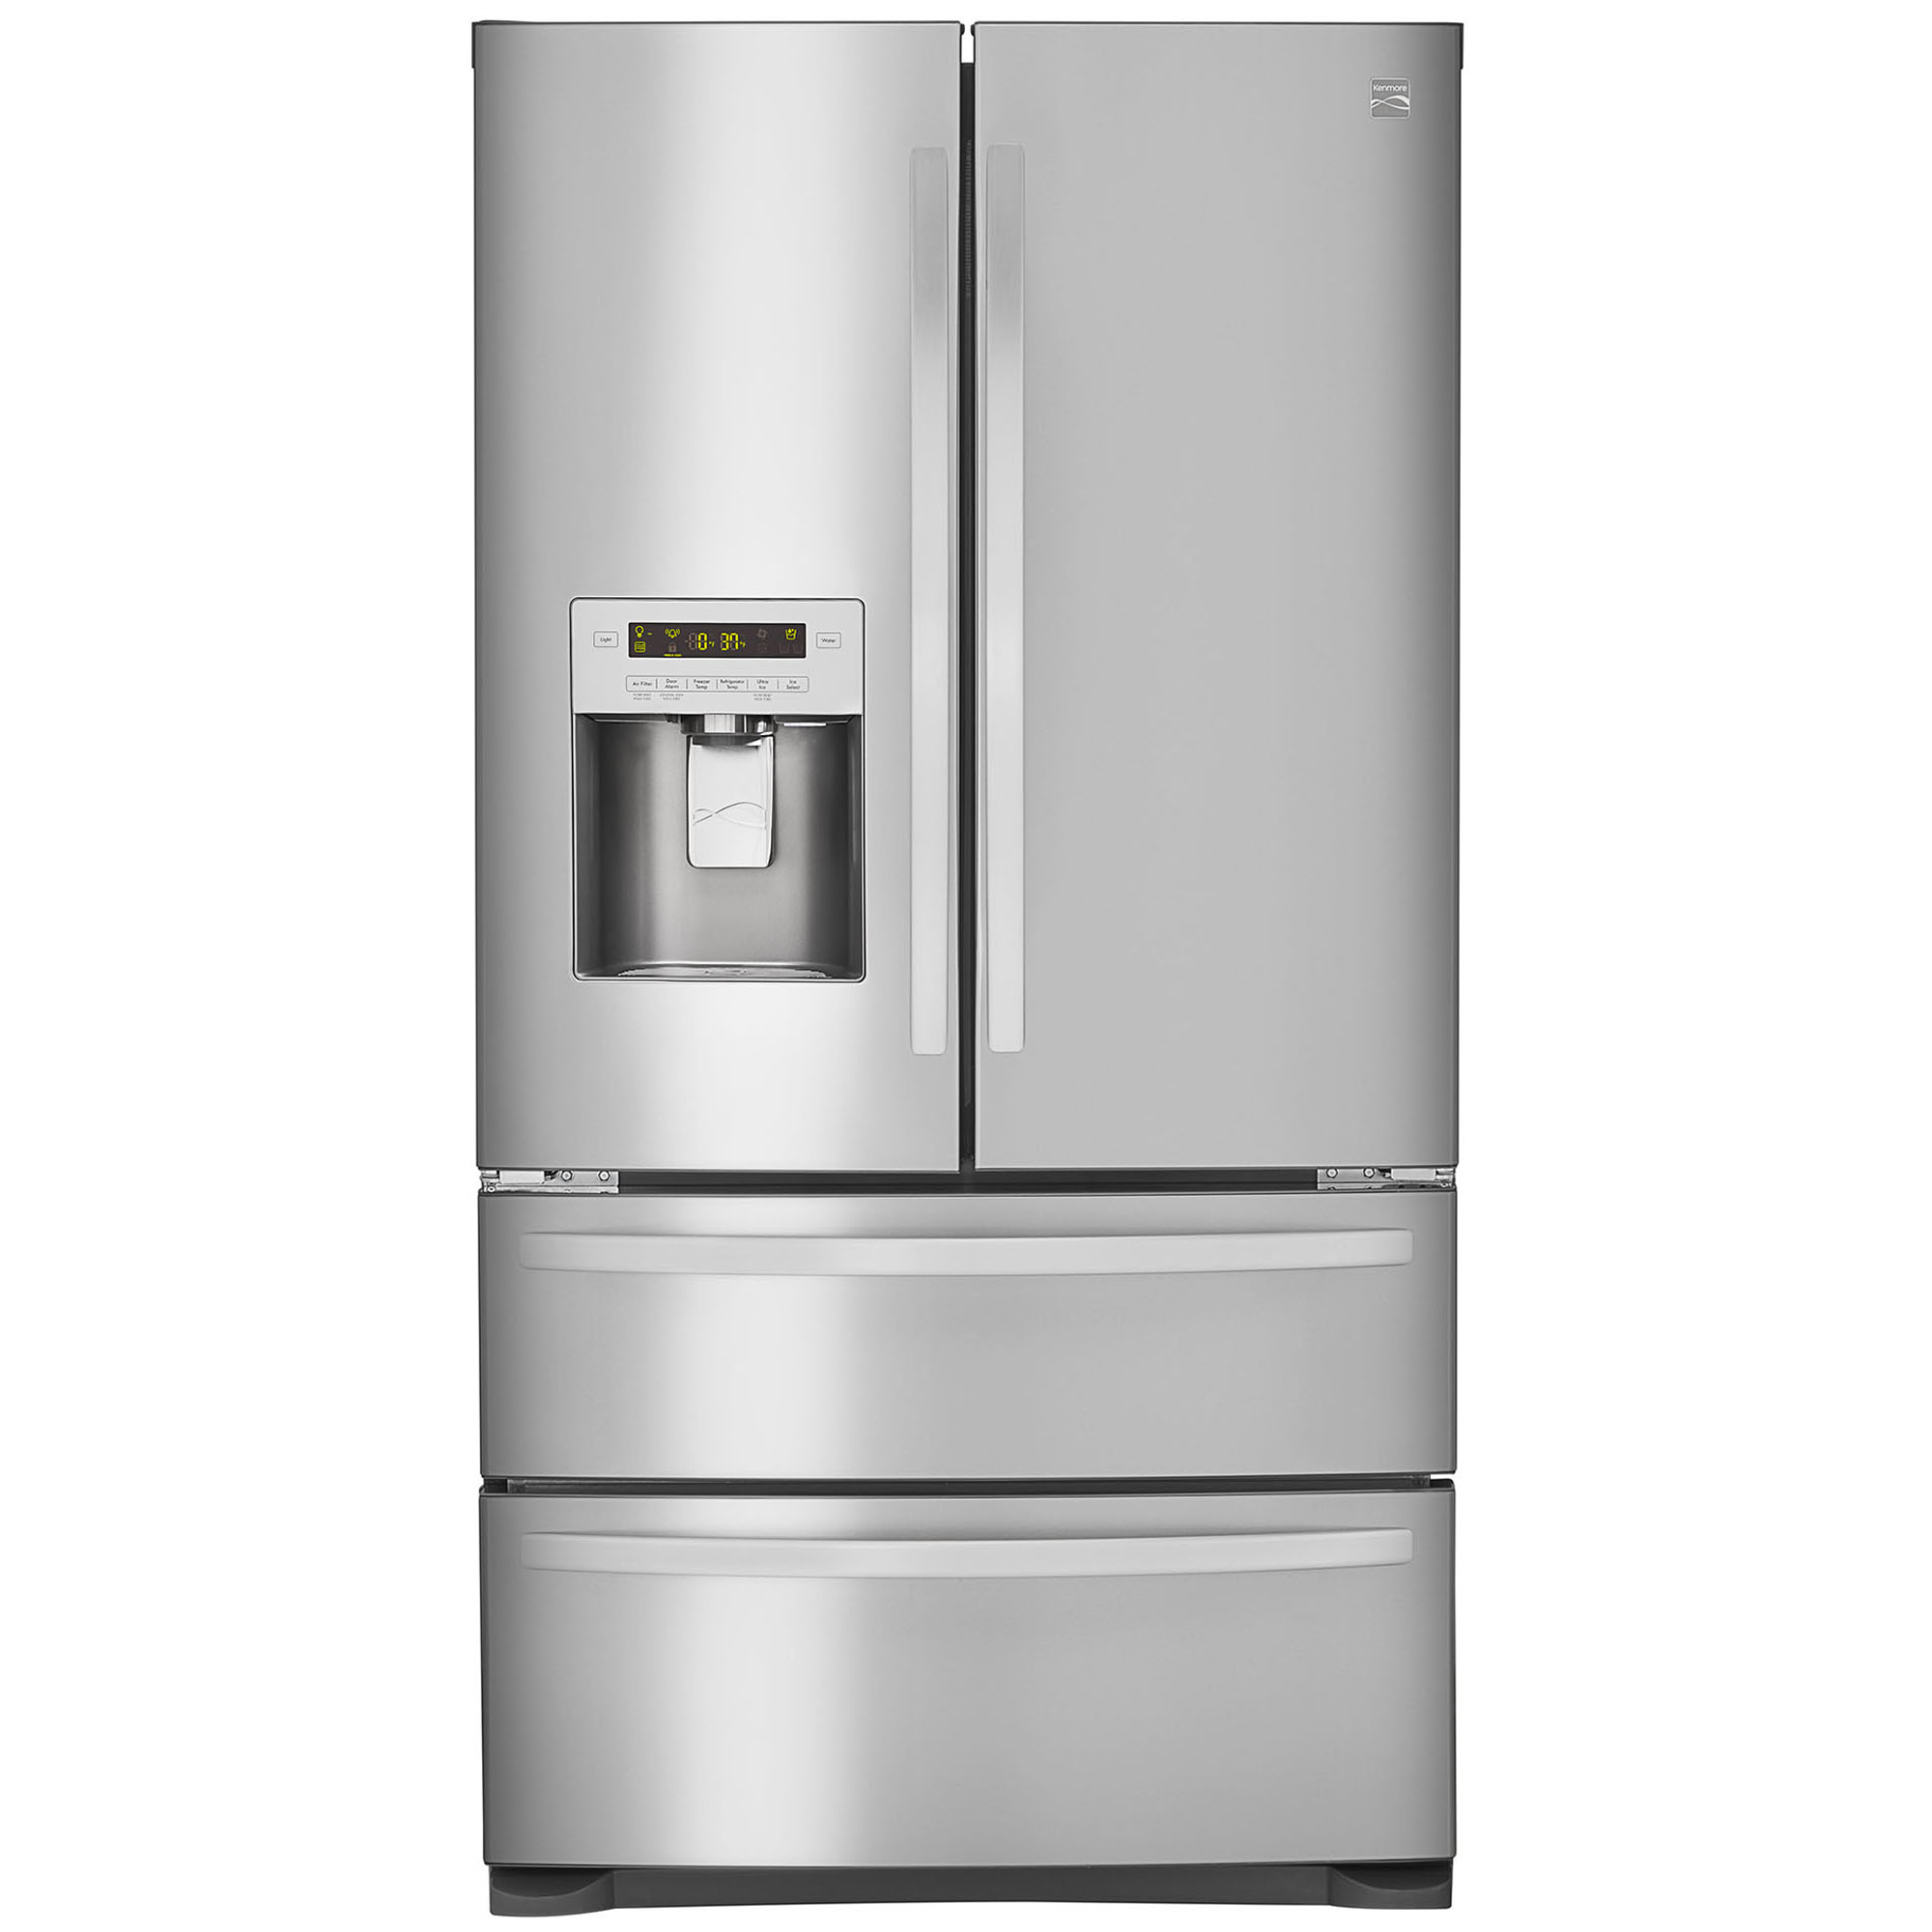 72493-26-7-cu-ft-4-Door-French-Door-Refrigerator-w-Dual-Freezer-Drawers-%E2%80%93-Stainless-Steel